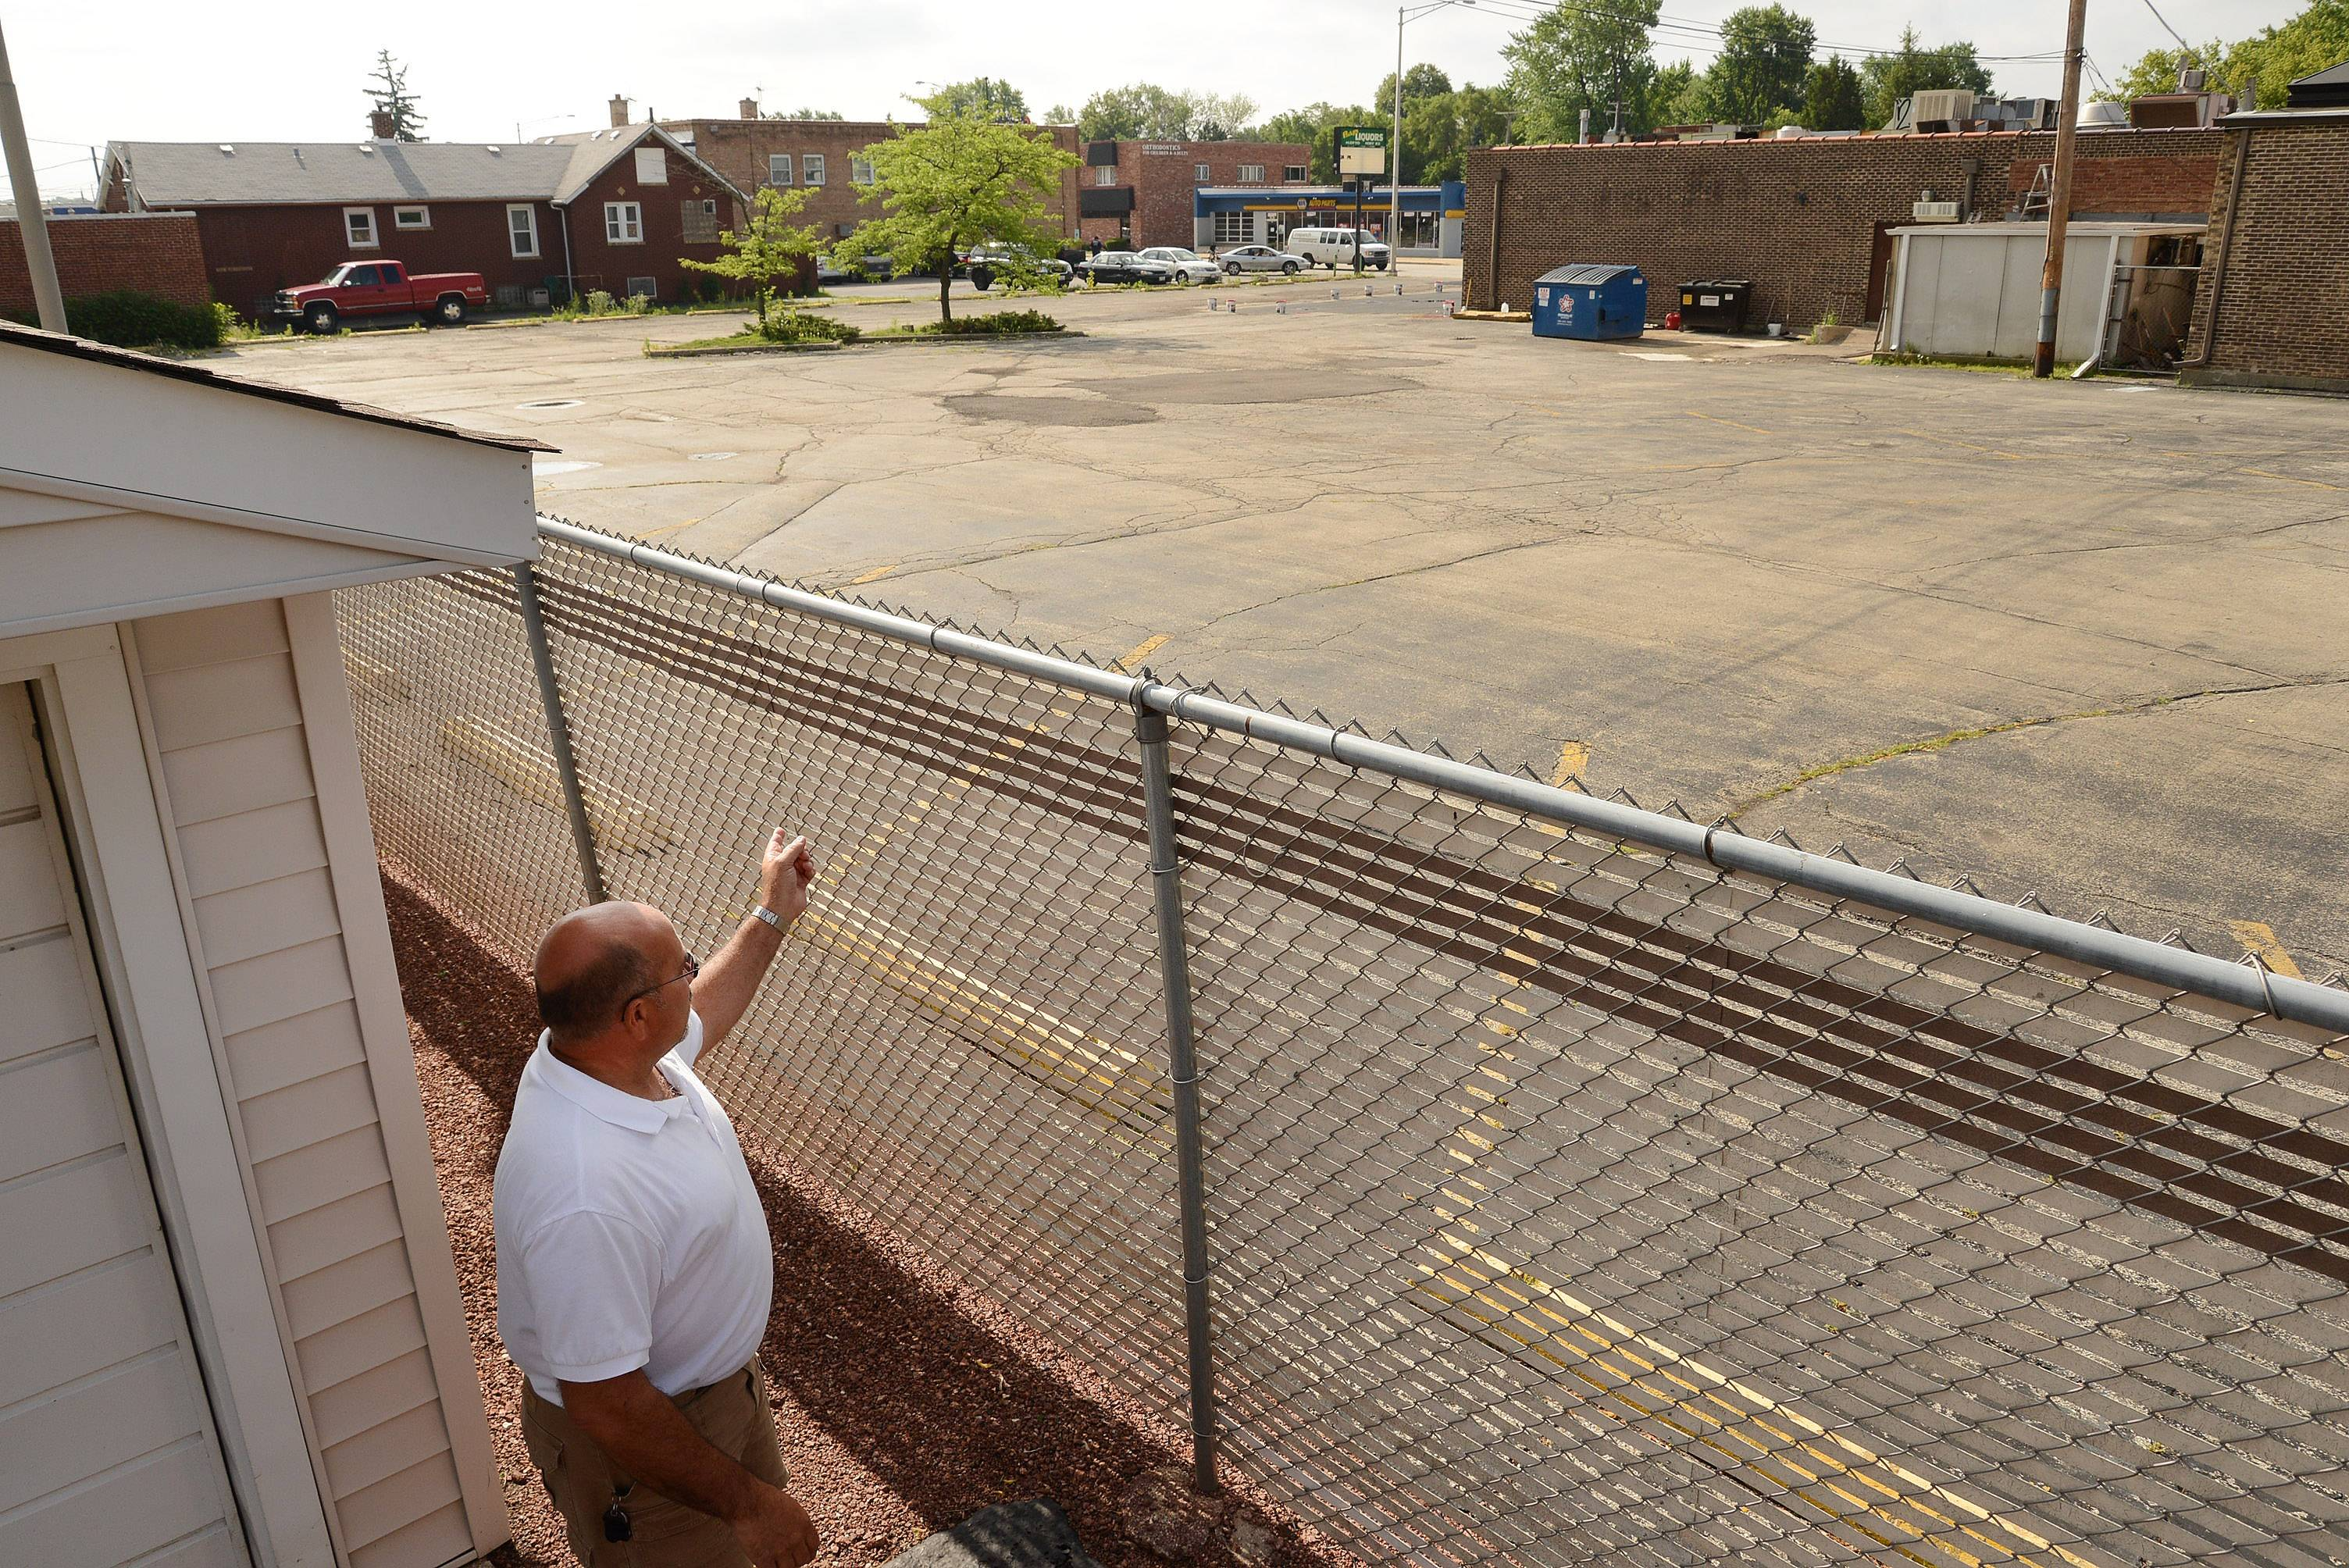 Bob Nicioli gestures from his driveway in Des Plaines toward the Black Ram restaurant, which he and other neighbors say is the source of late-night noise. Neighbors say the restaurant's plan to build an outdoor patio will only make matters worse.